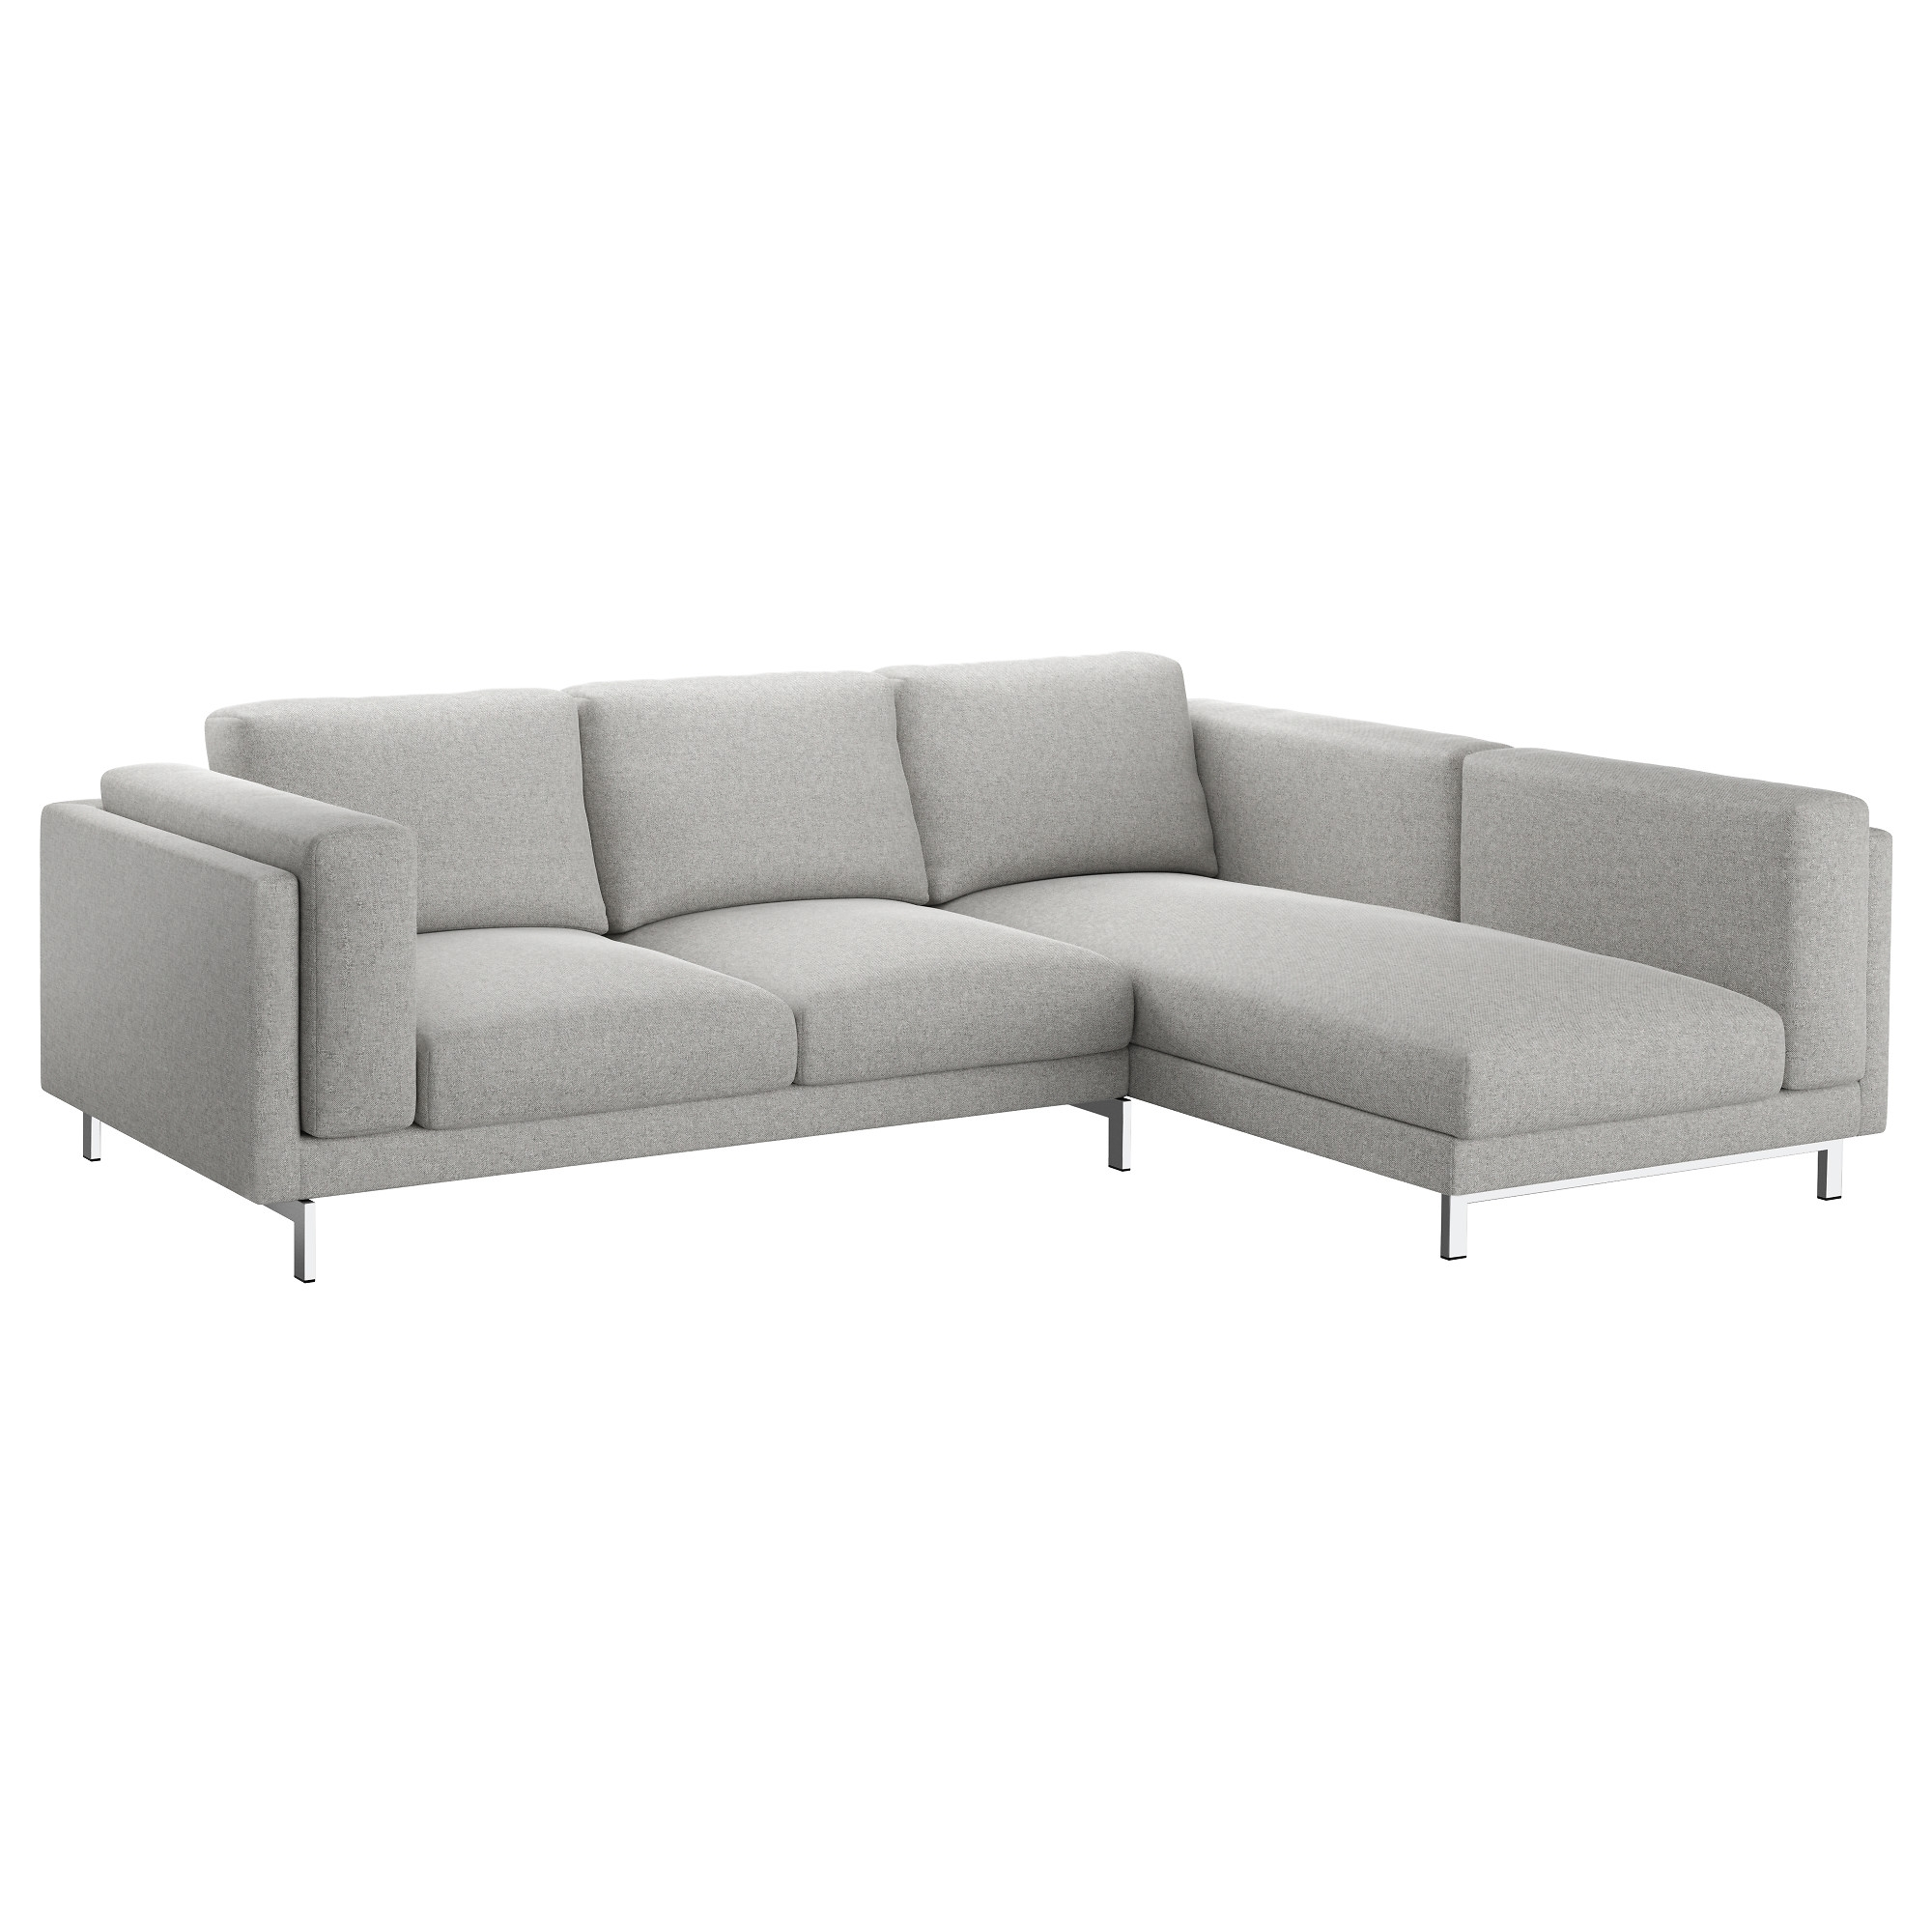 Preferred Ikea Chaise Sofas For Sofa: Unique Cheap Chaise Sofa Cheap Chaise Lounge, Couches Ikea (View 12 of 15)